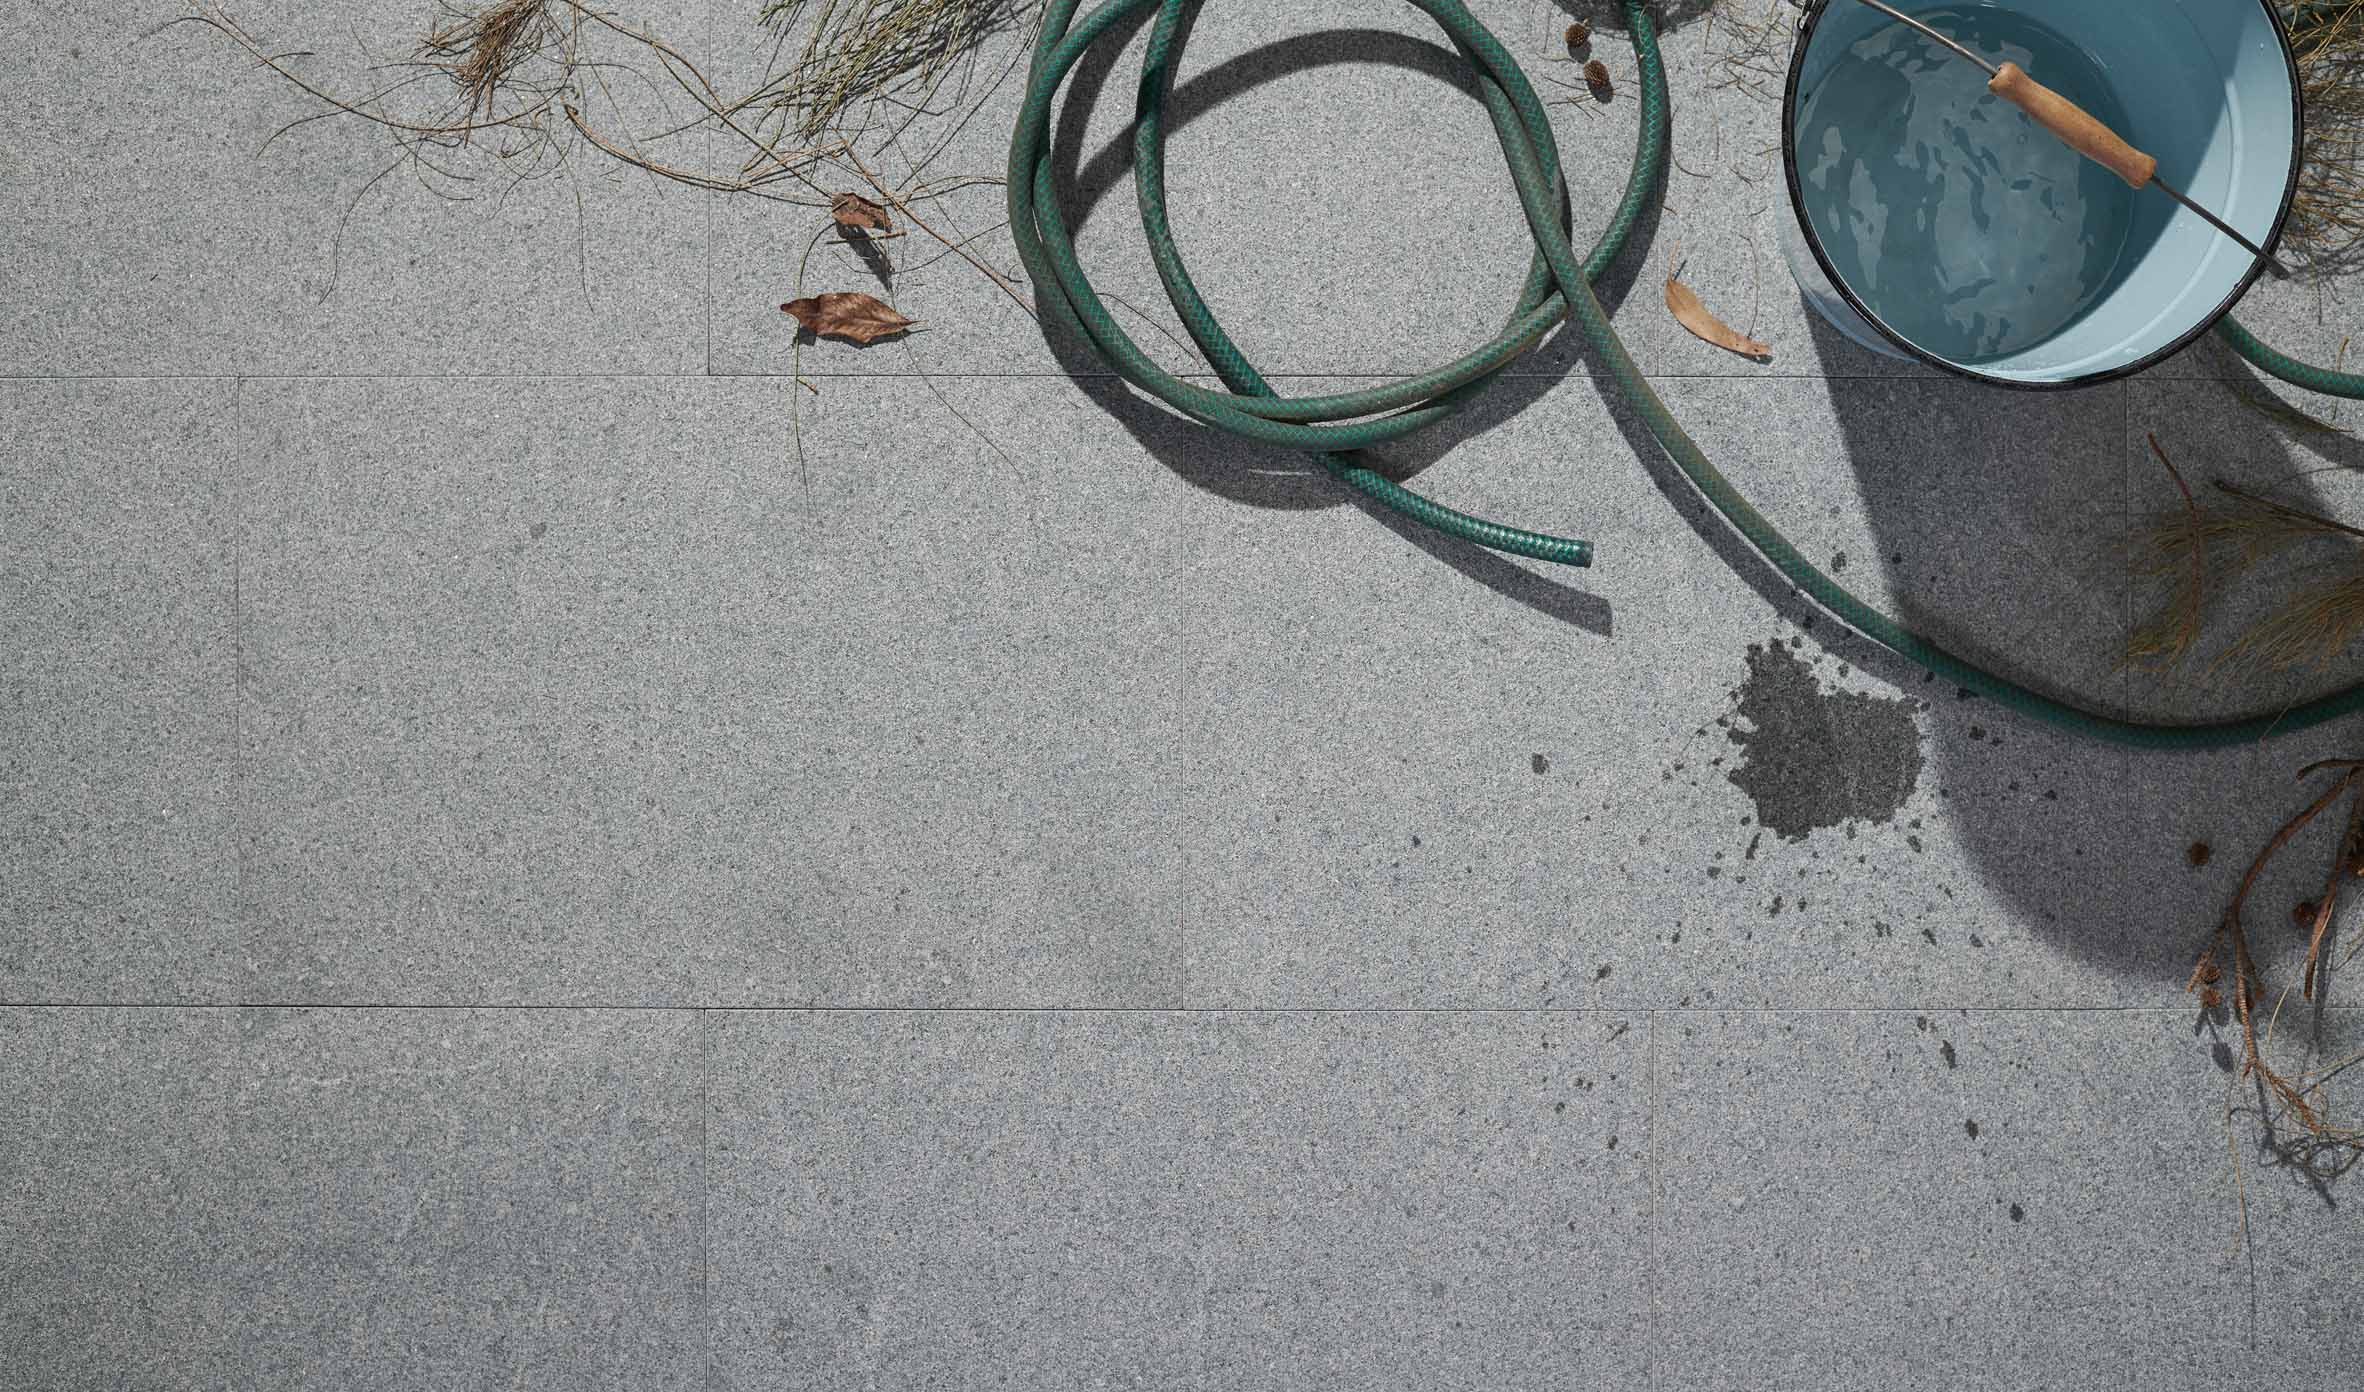 Stone-Pavers-and-Tiles-Outdoor Thumbnail stone-pavers-and-tiles-outdoor-thumbnail-06